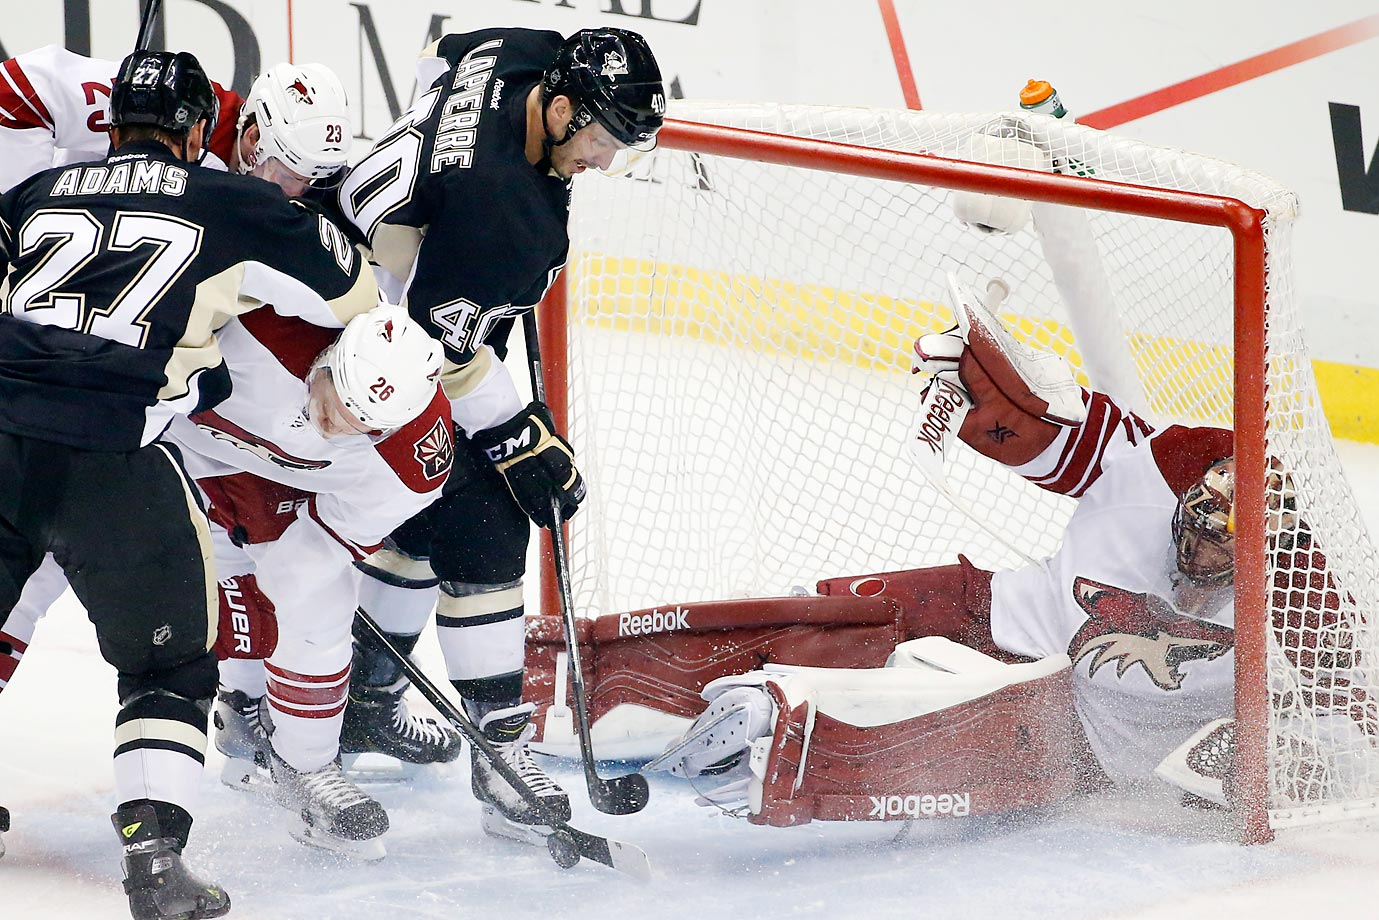 Maxim Lapierre of the Penguins' tries to reach a rebound as Mike Smith of the Coyotes falls into his net.